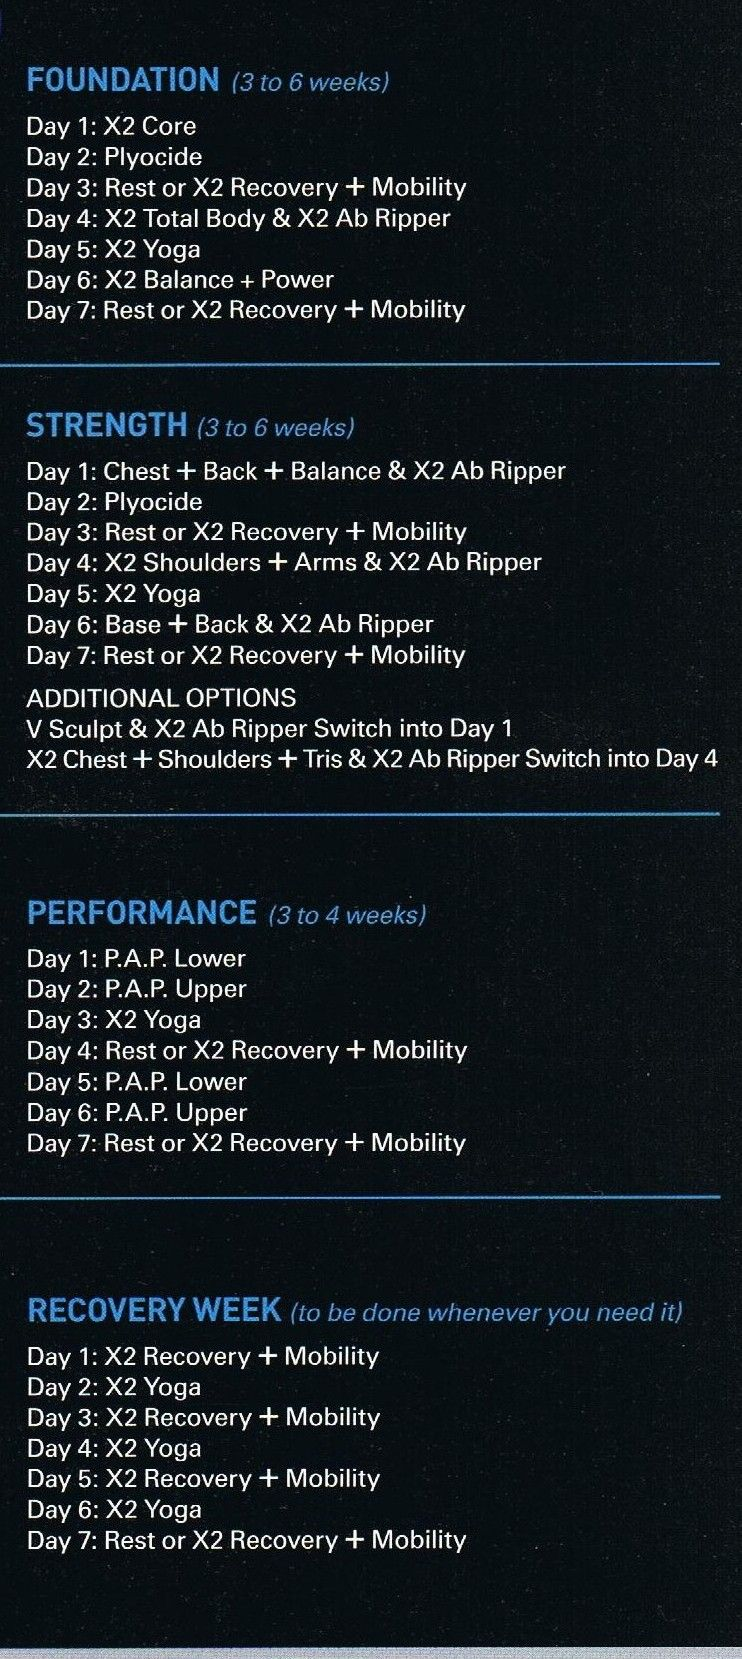 P90X2-Workout-Schedule , calories burned | Exercise, Health ...